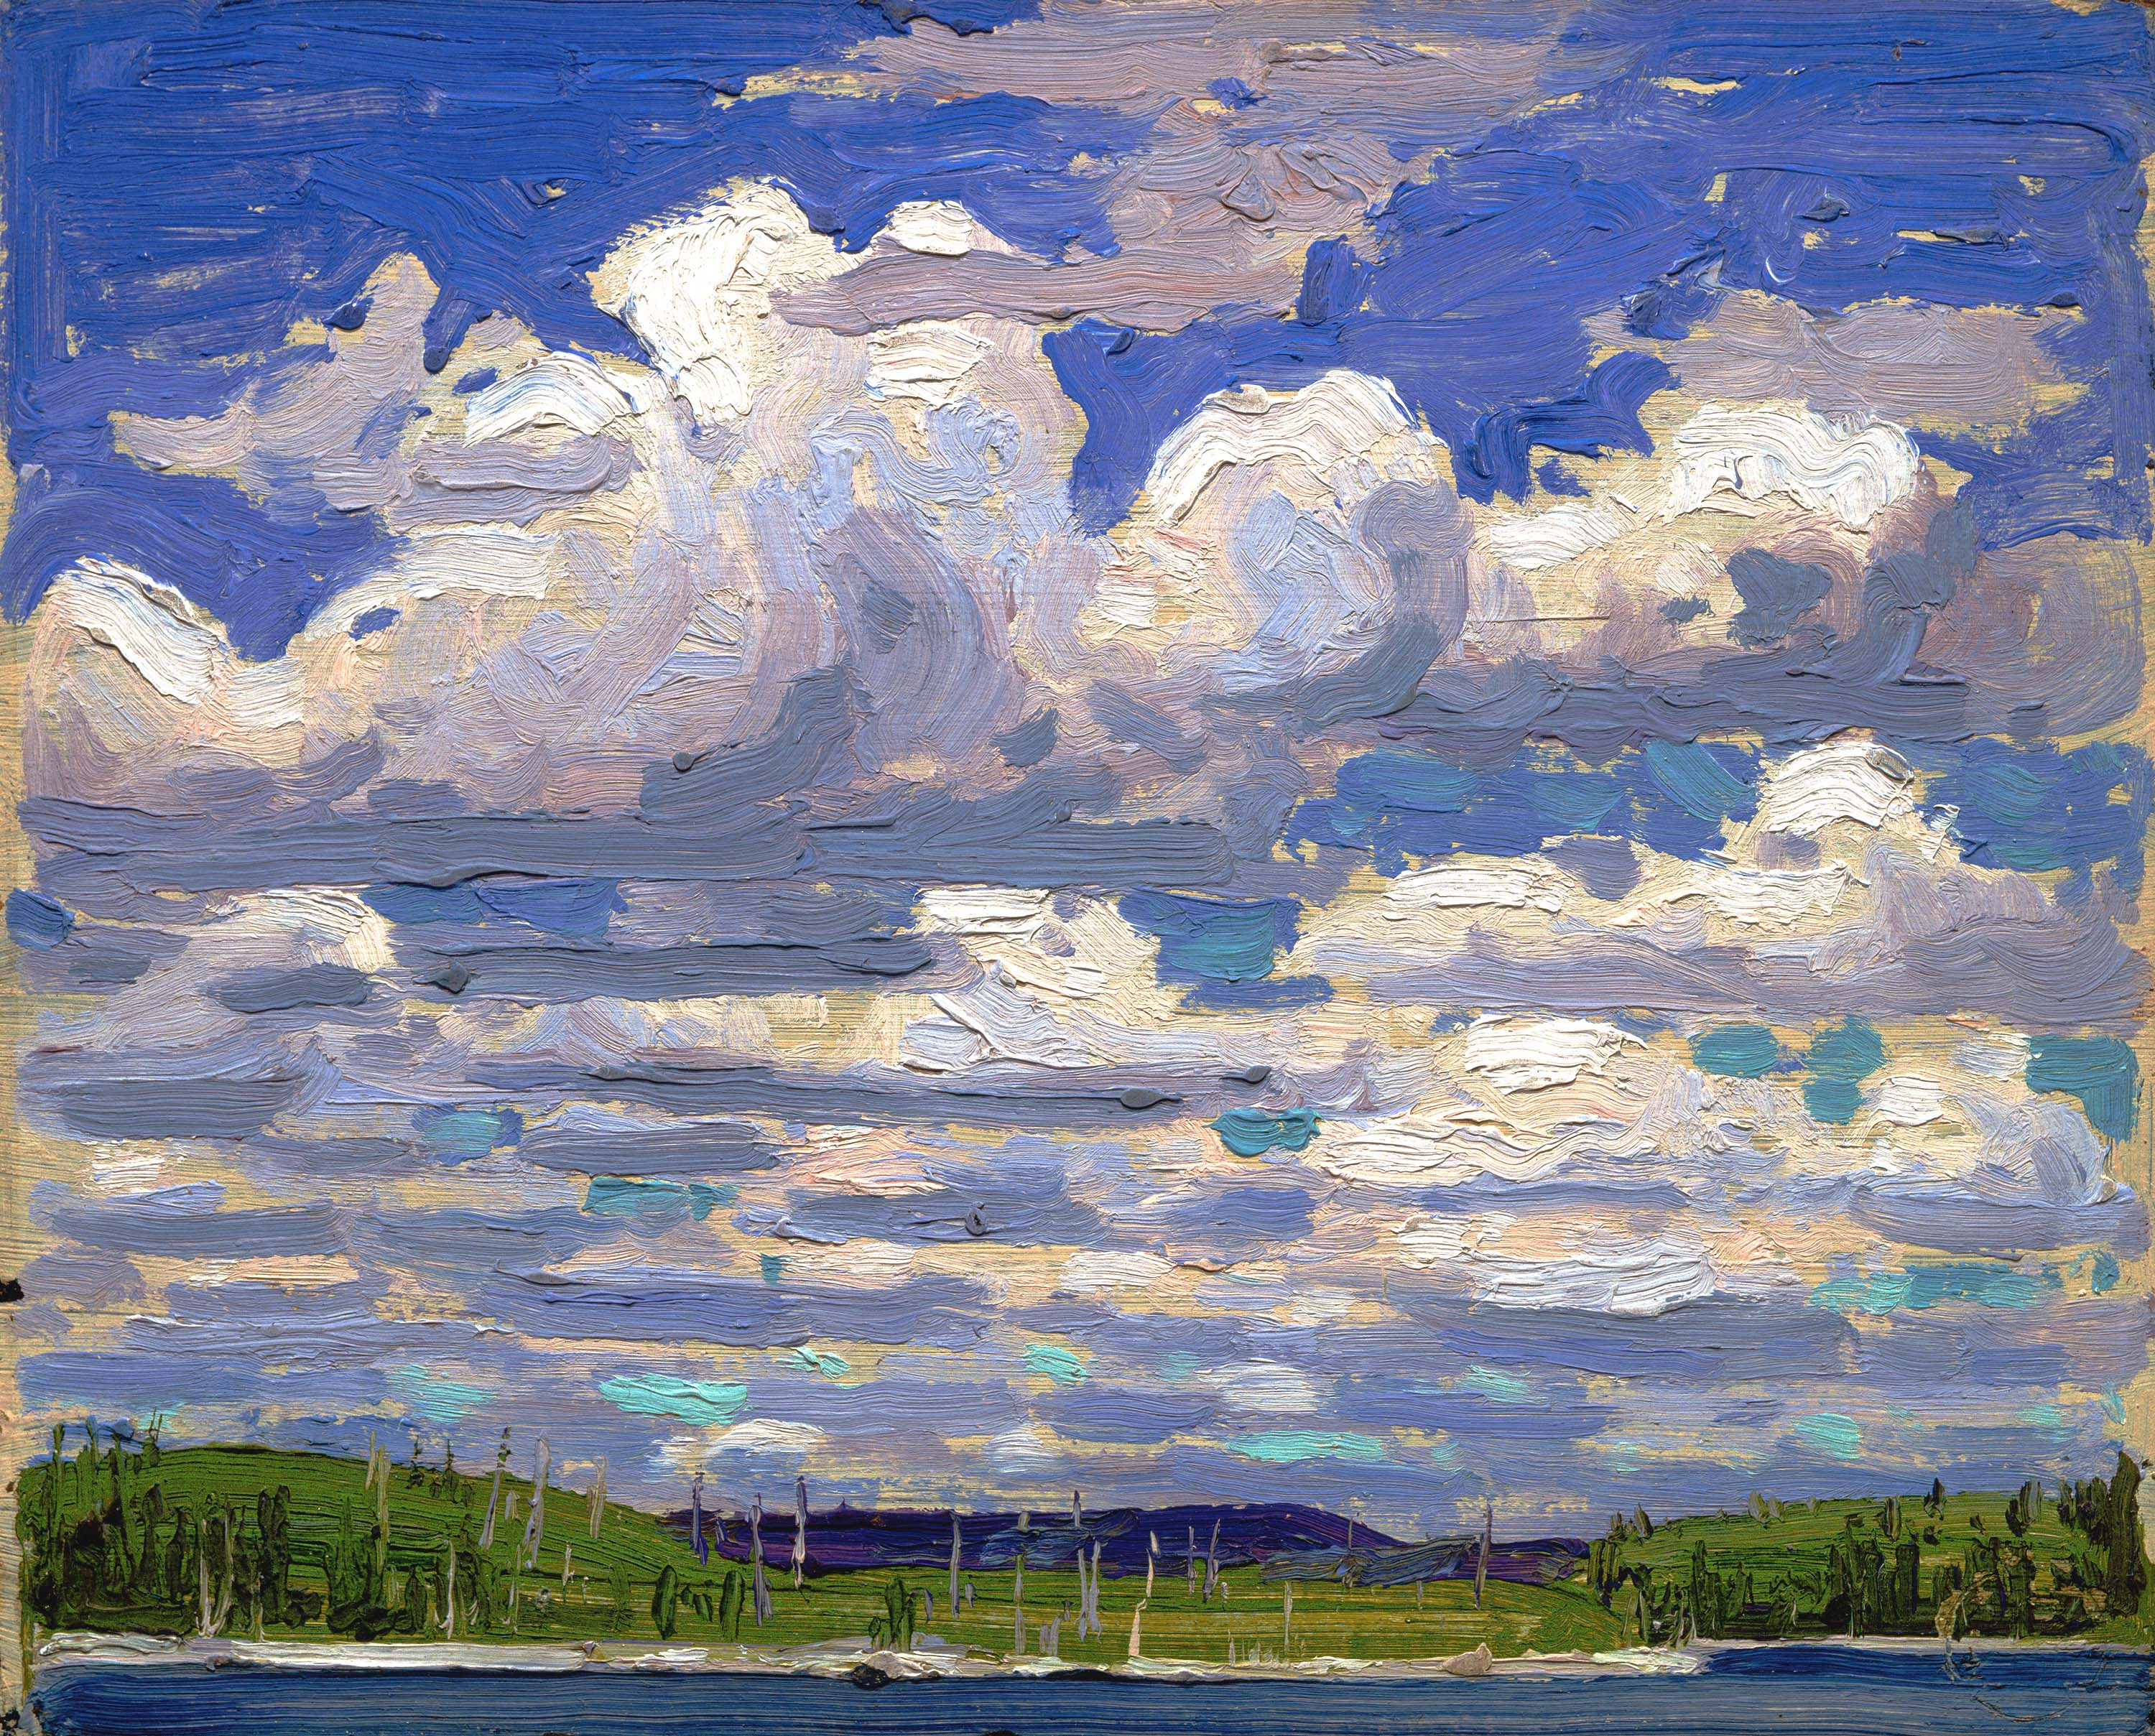 Eulalies Journey to Algonquin with Tom Thomson Children